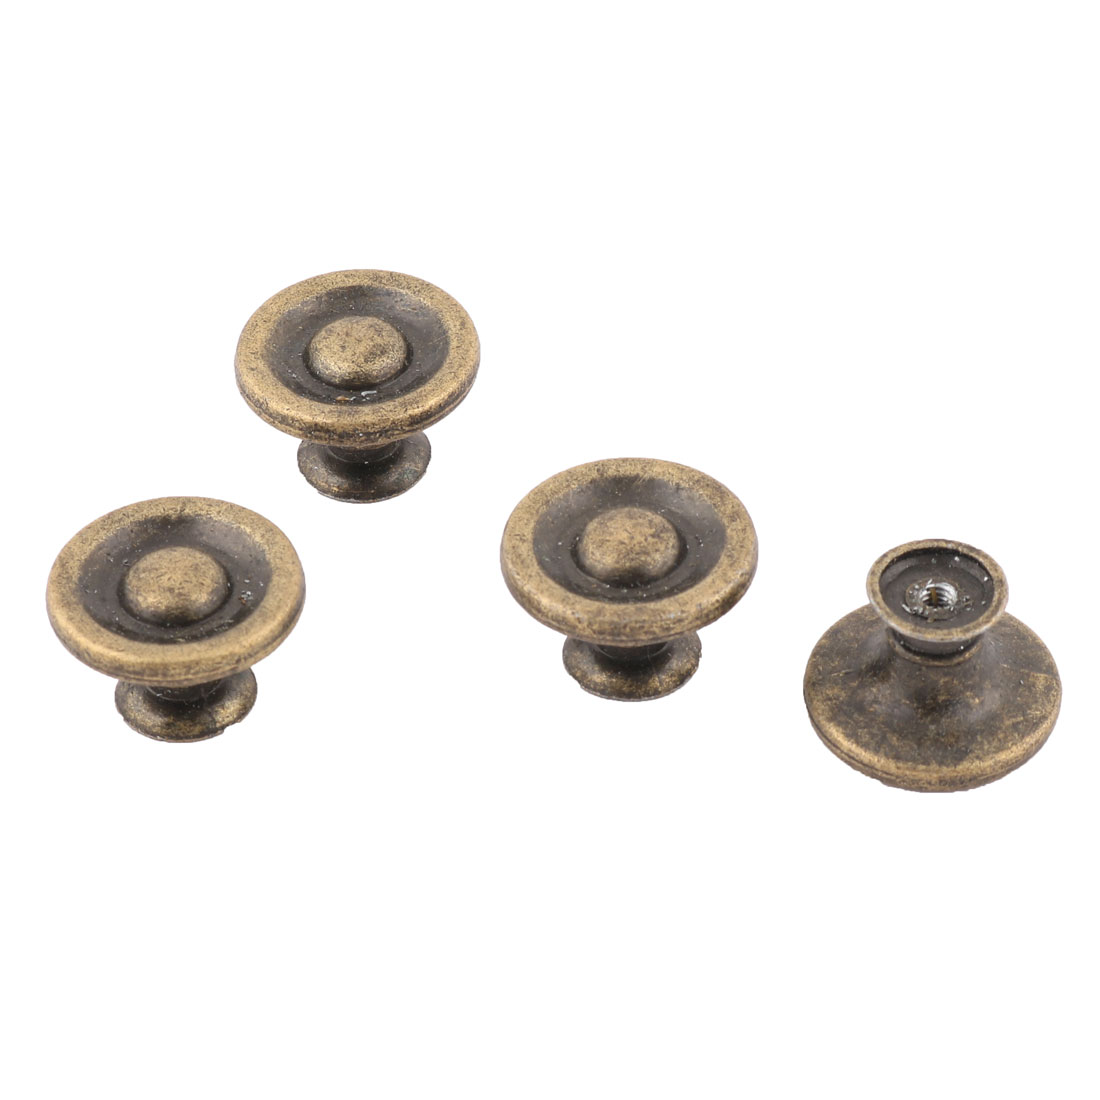 Metal Round Shape Furniture Parts Drawer Cupboard Door Handle Pull Knob Bronze Tone 4 Pcs